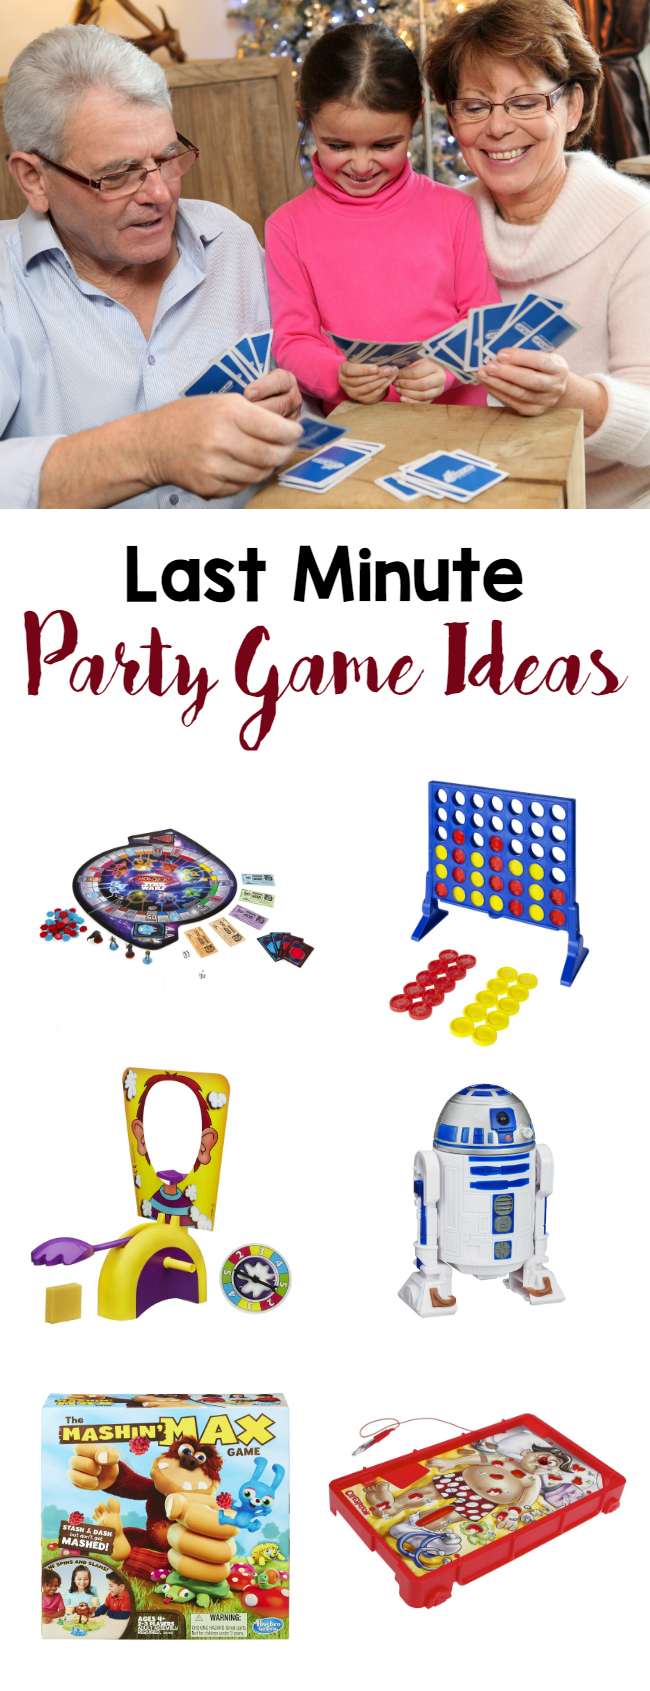 Last minute party game ideas a grande life for Last minute party ideas